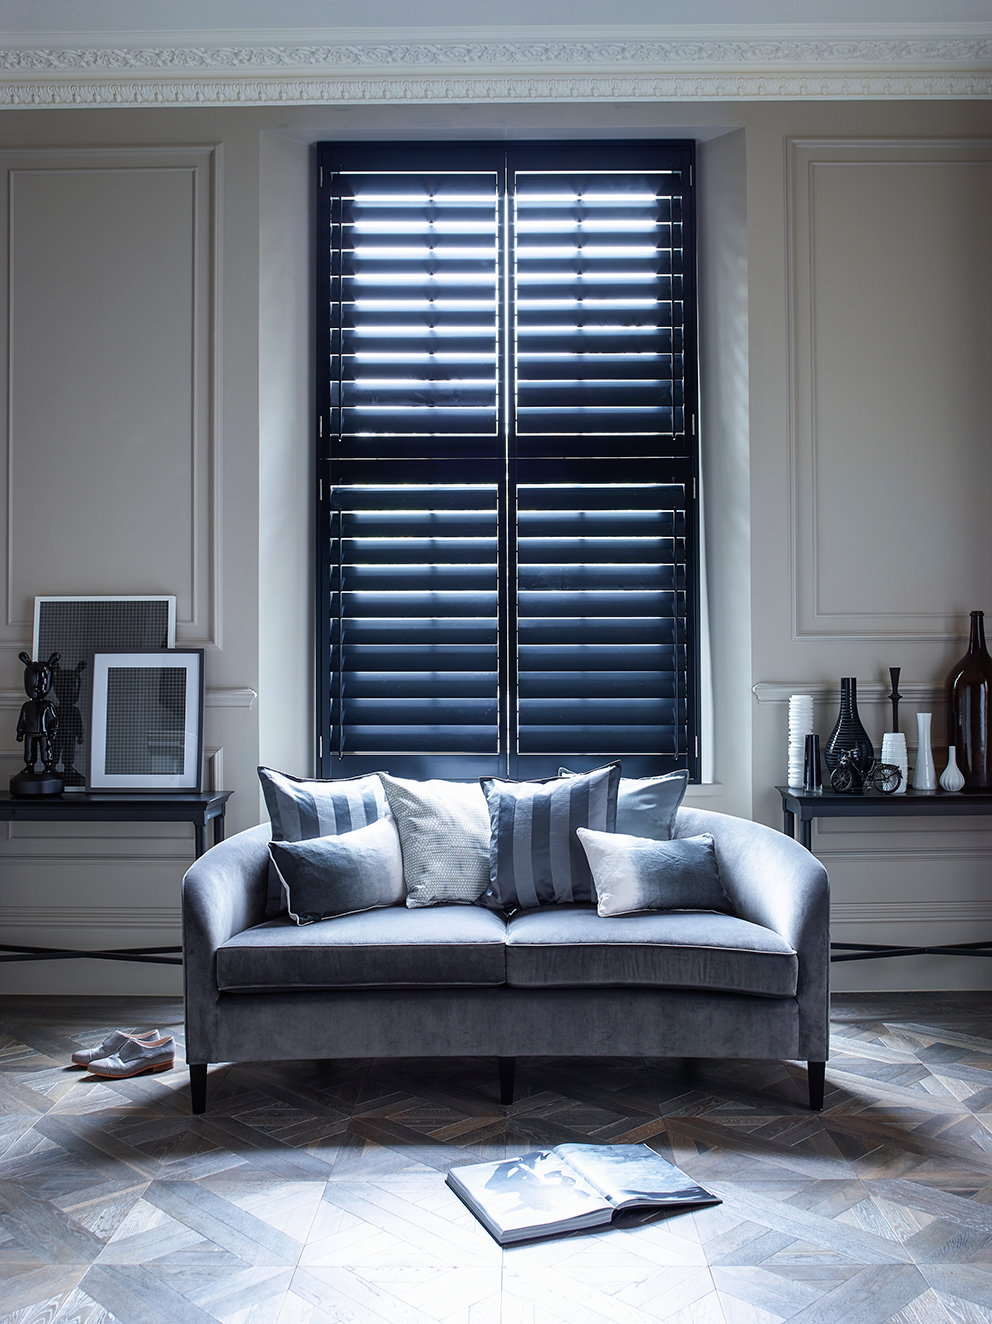 Shutterly Fabulous - French For Pineapple Blog - Black Plantation Shutters in glamorous living room with grey sofa and parquet floor